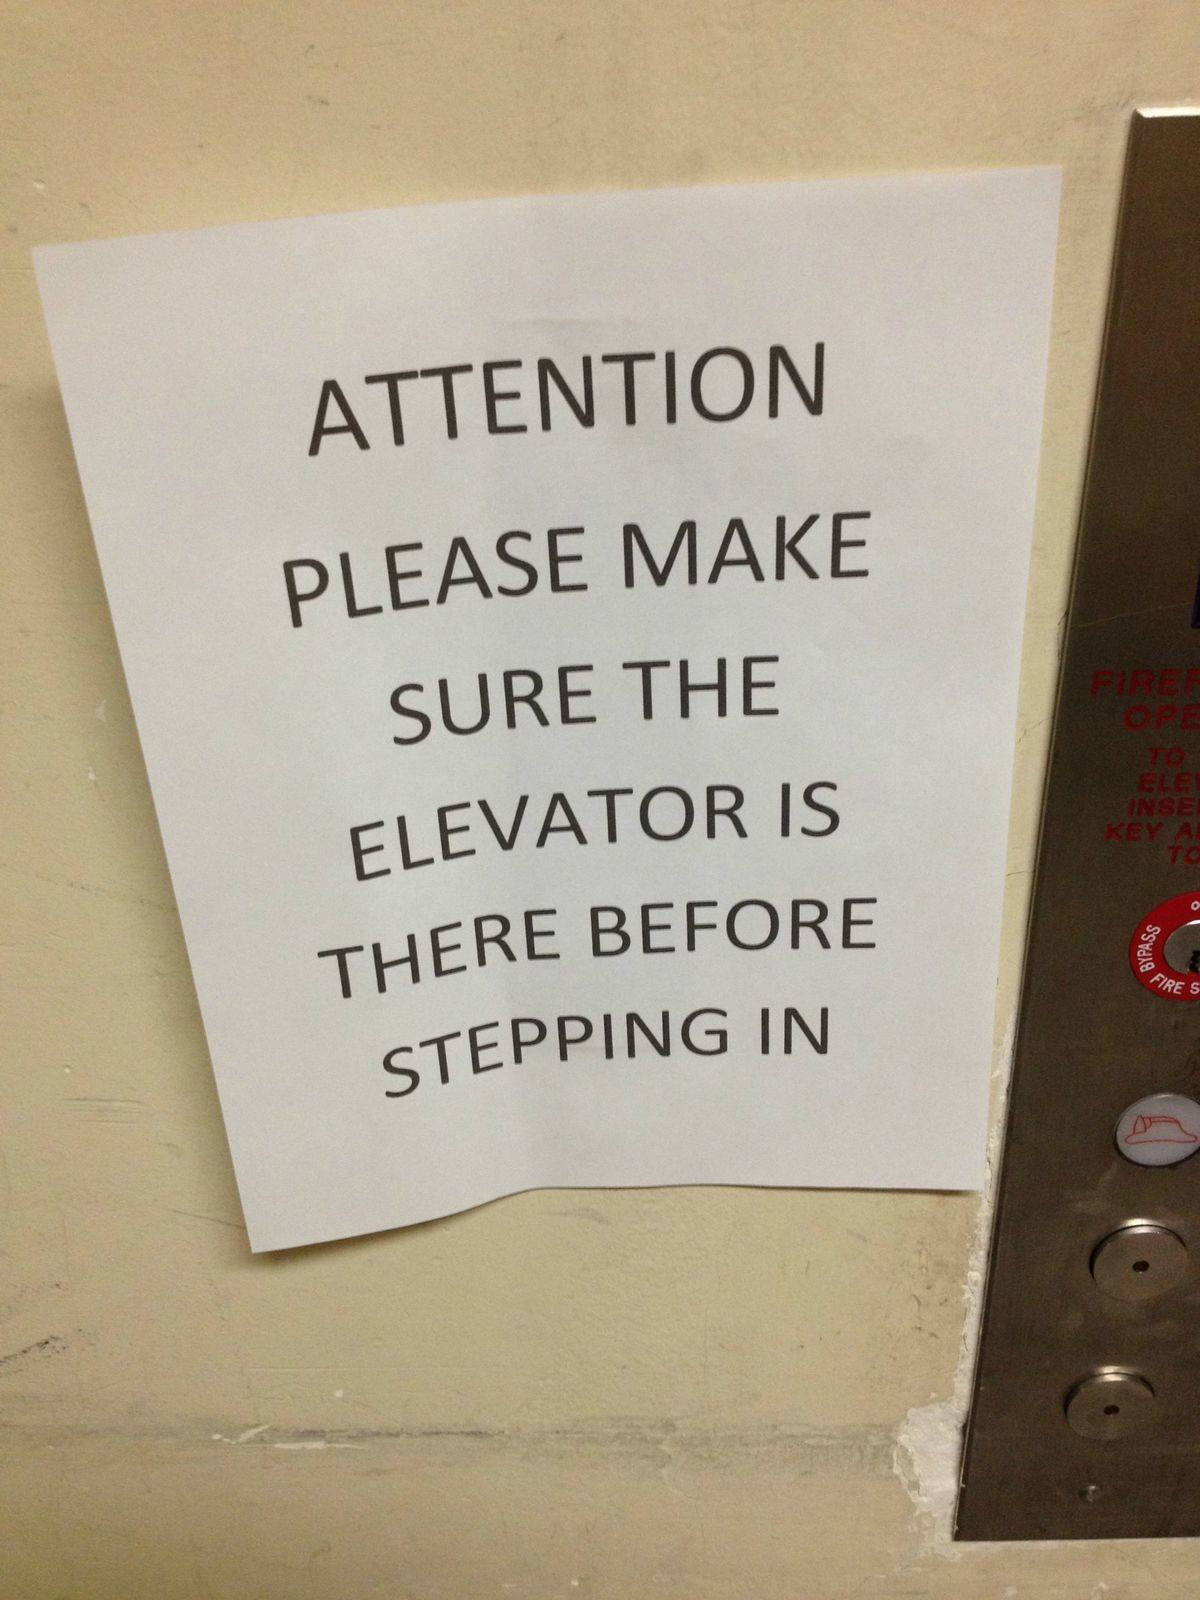 A sign warns people to make sure the elevator is there before stepping in.